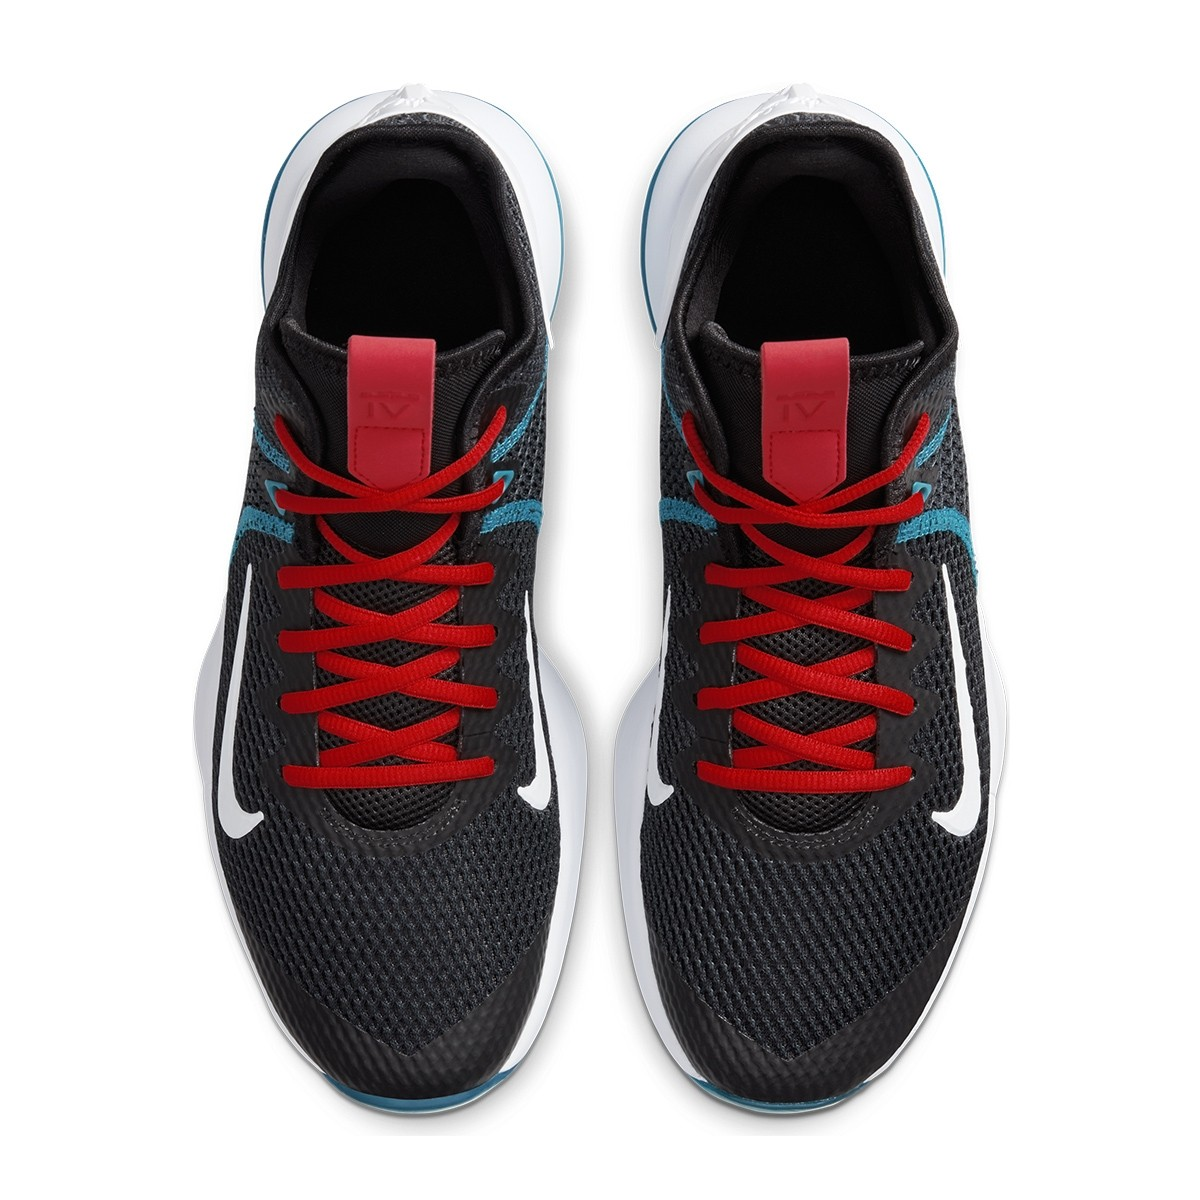 Nike Lebron Witness IV Jr 'Blue Sole'-BV7427-005-Jr